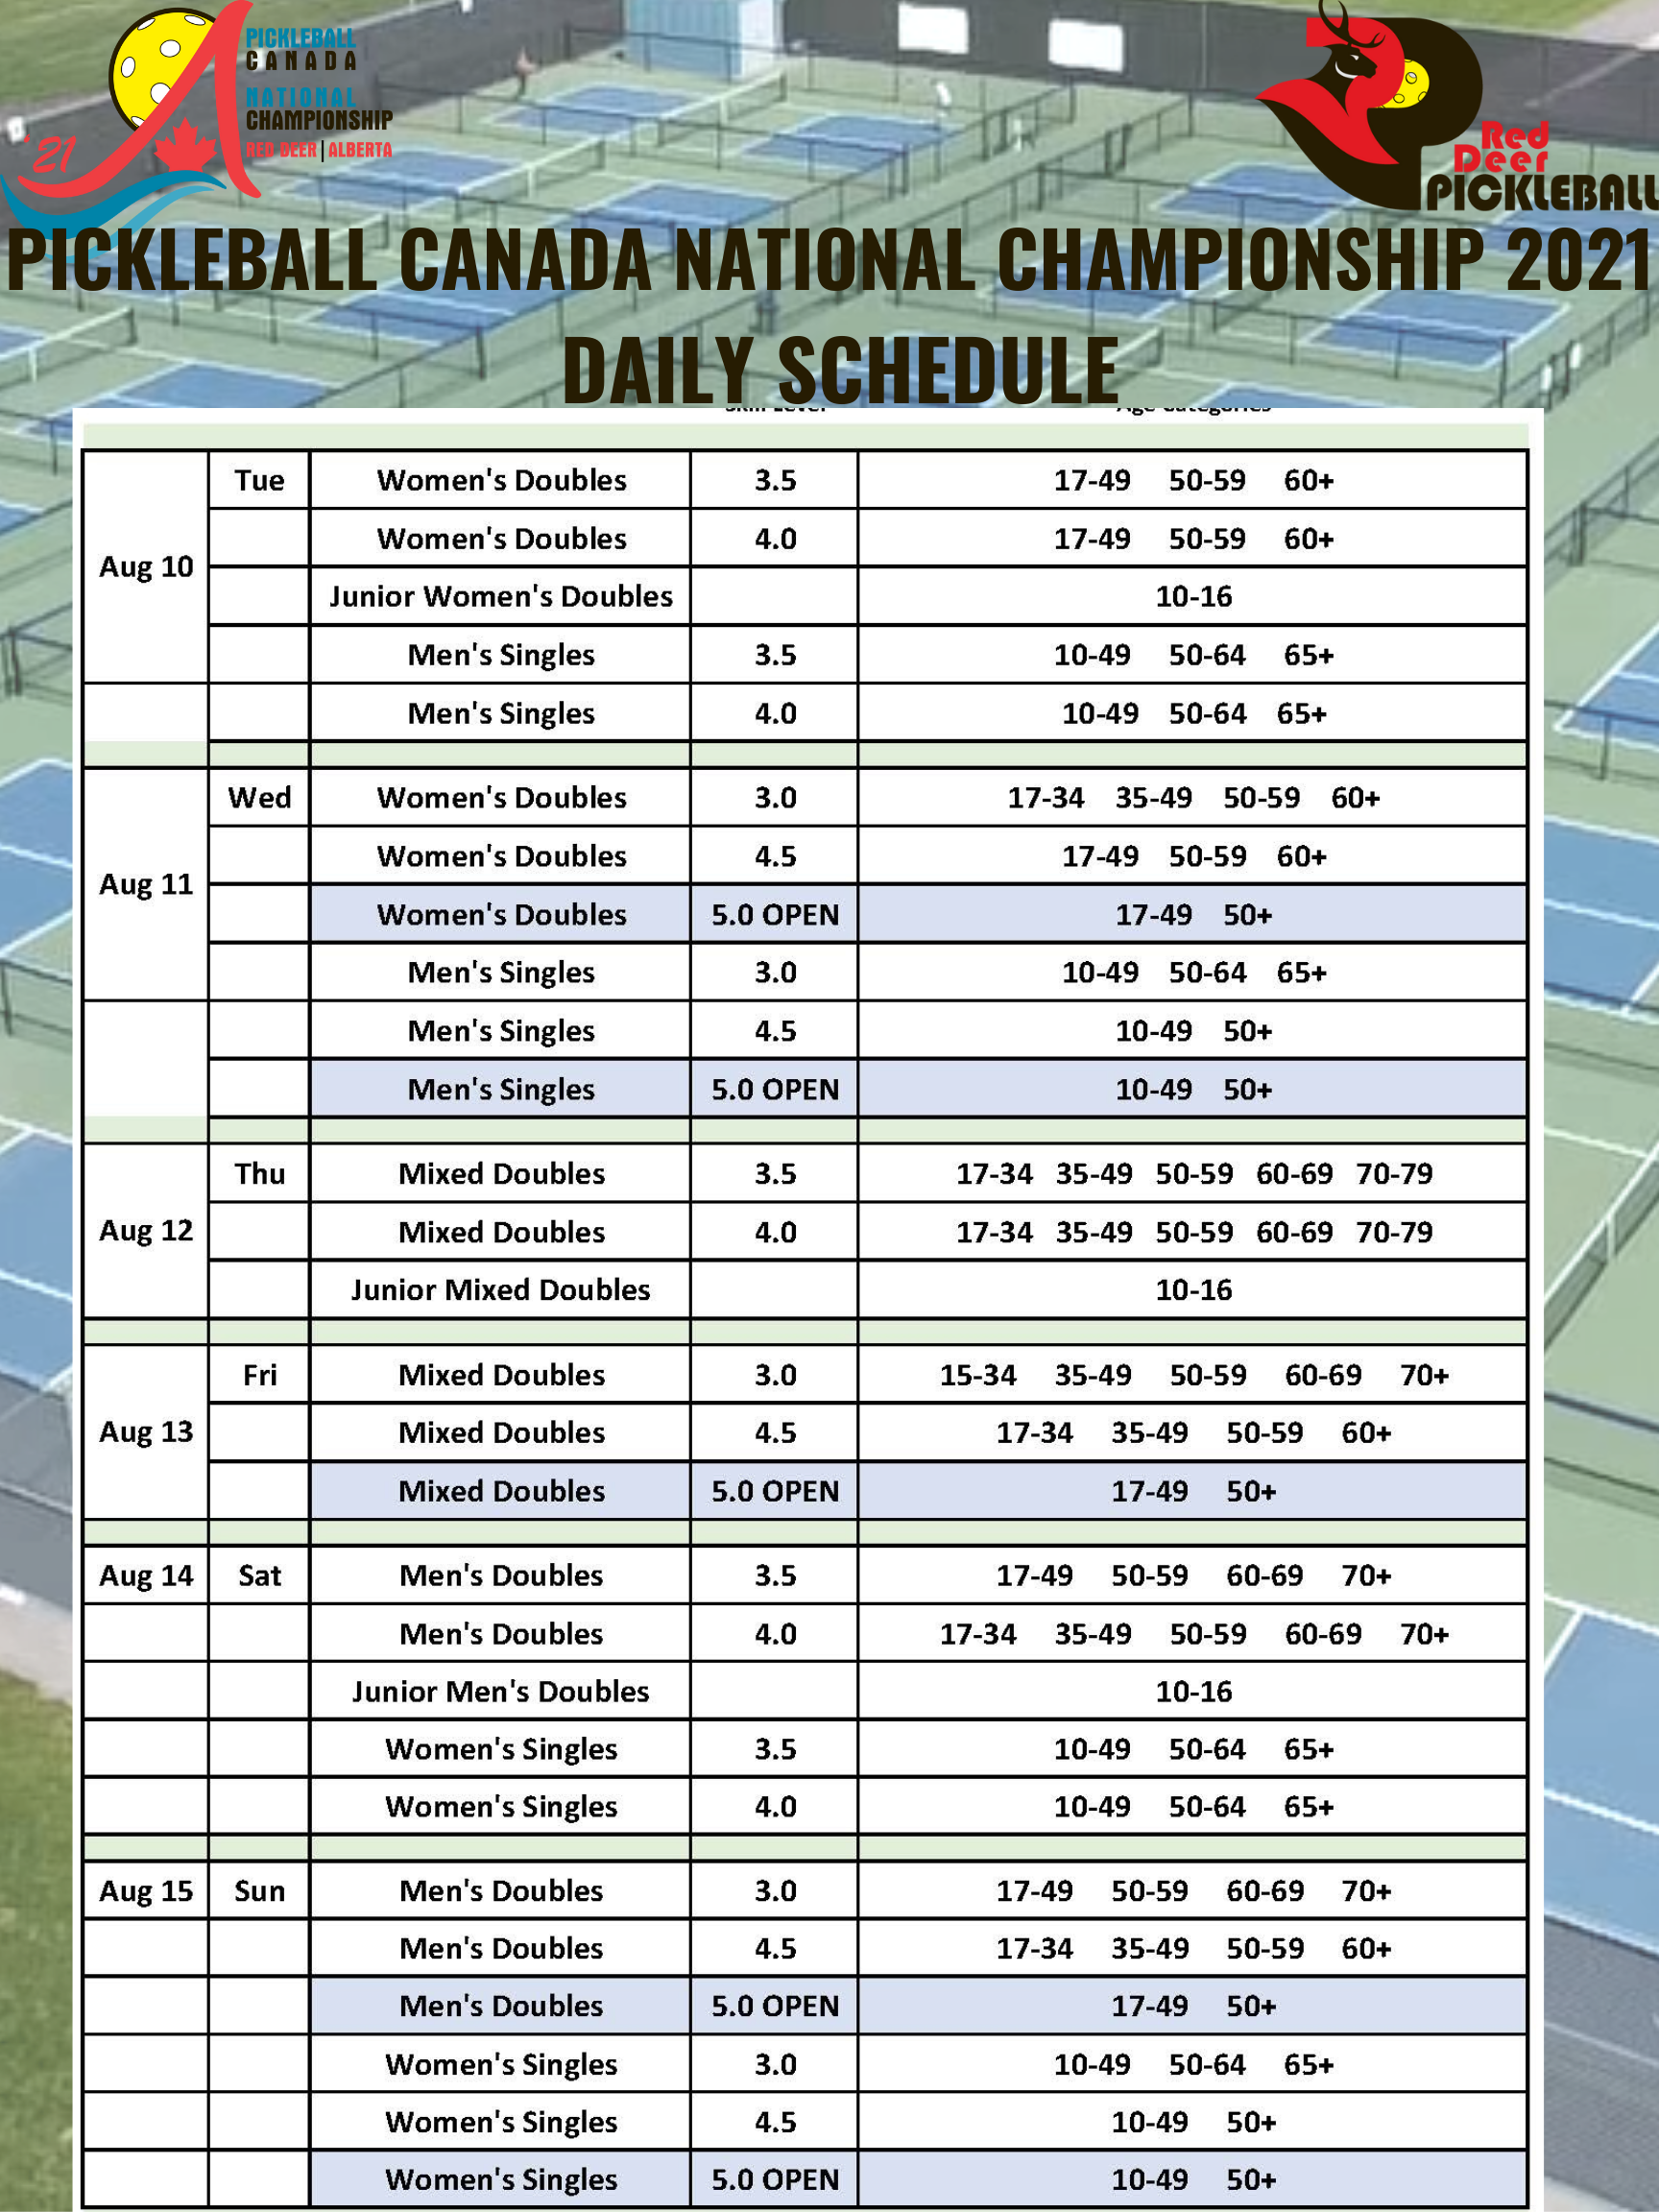 Pickleball Canada National Championship 2021 Daily Schedule